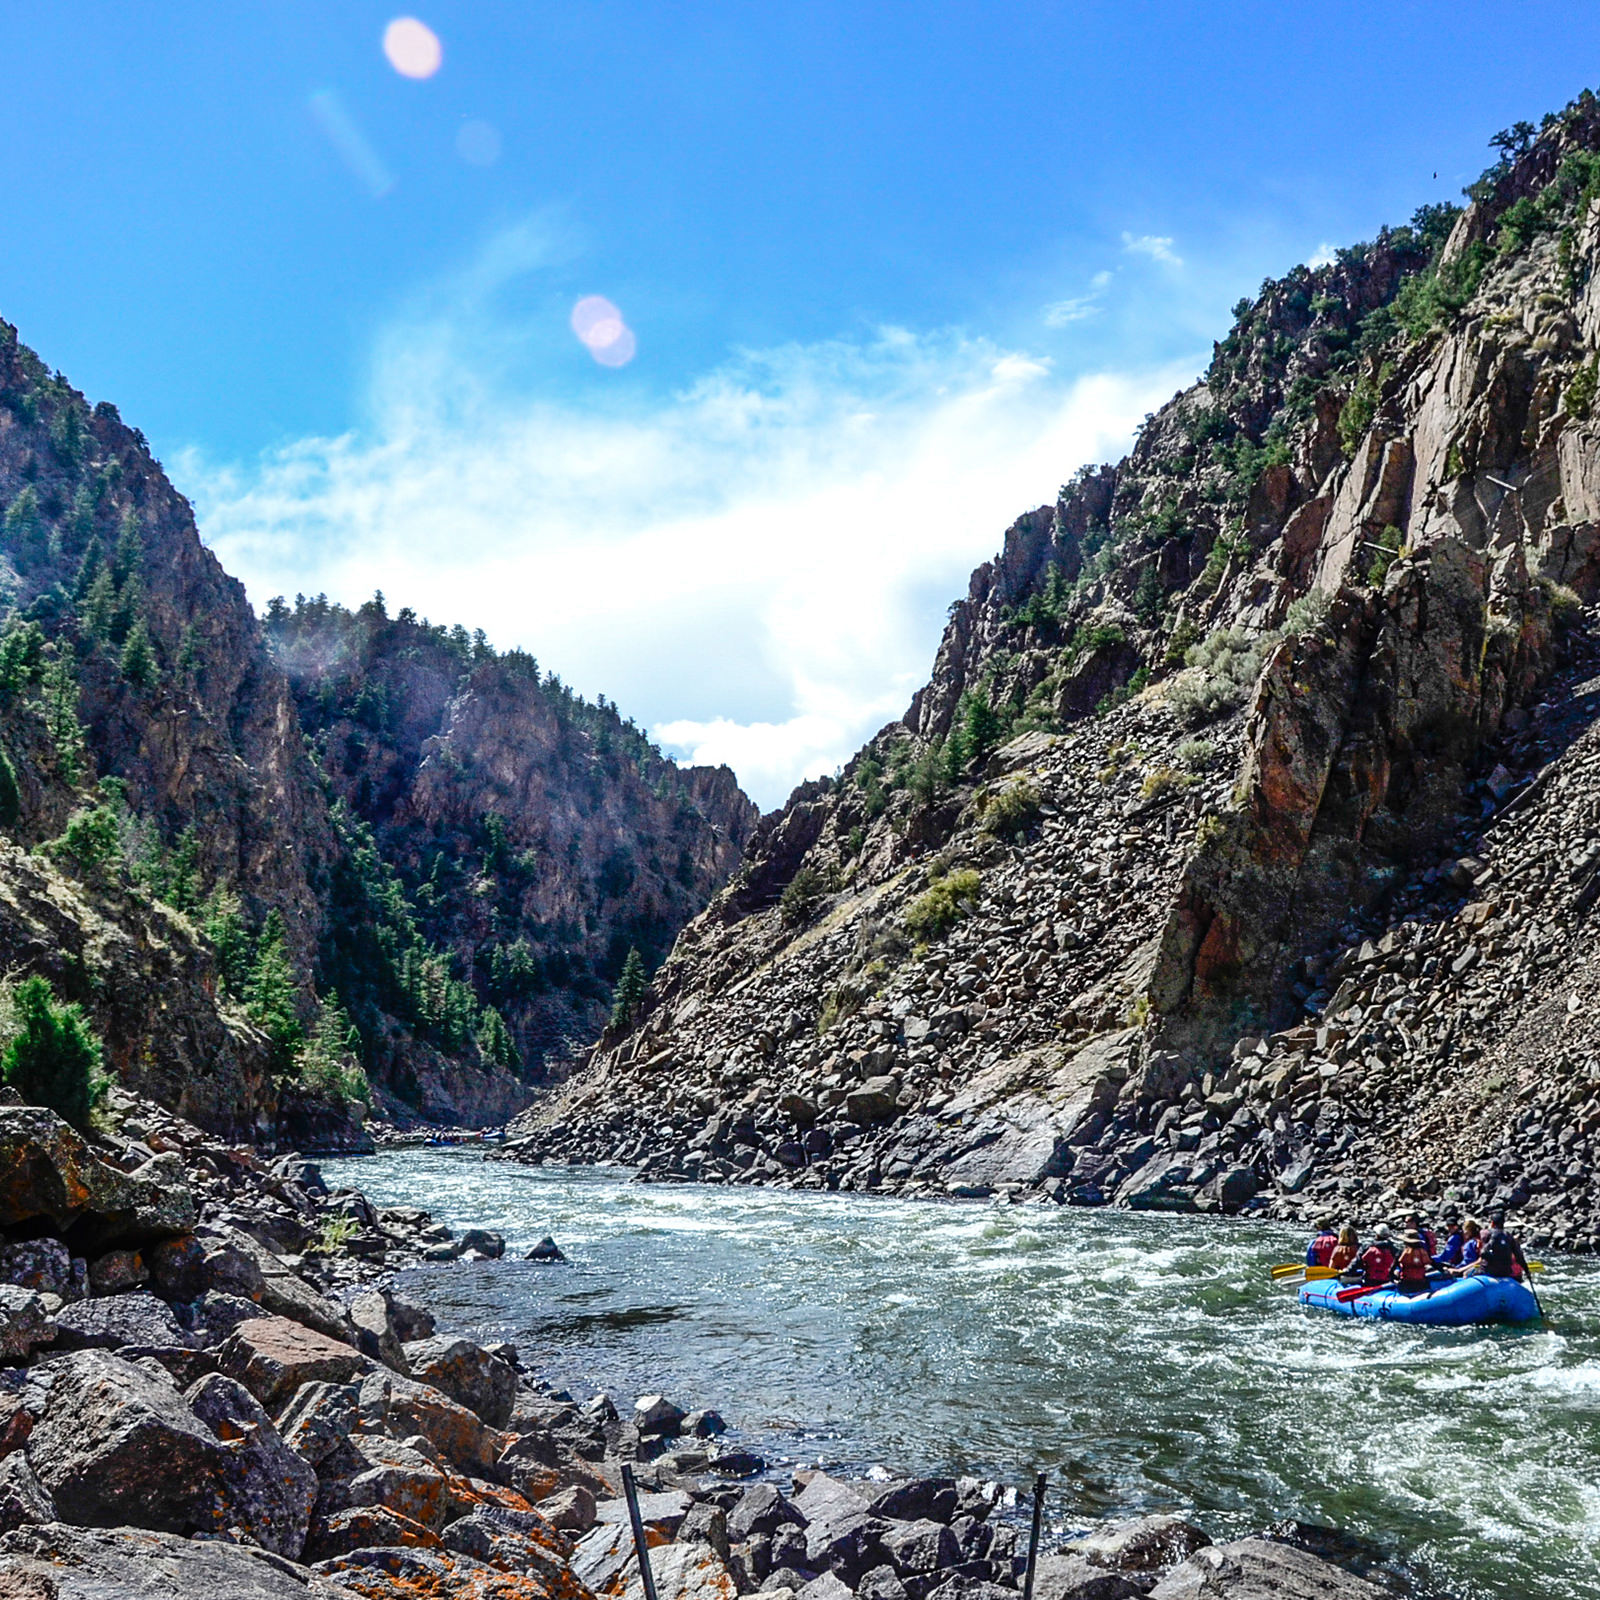 Scenic river rafting in the canyon